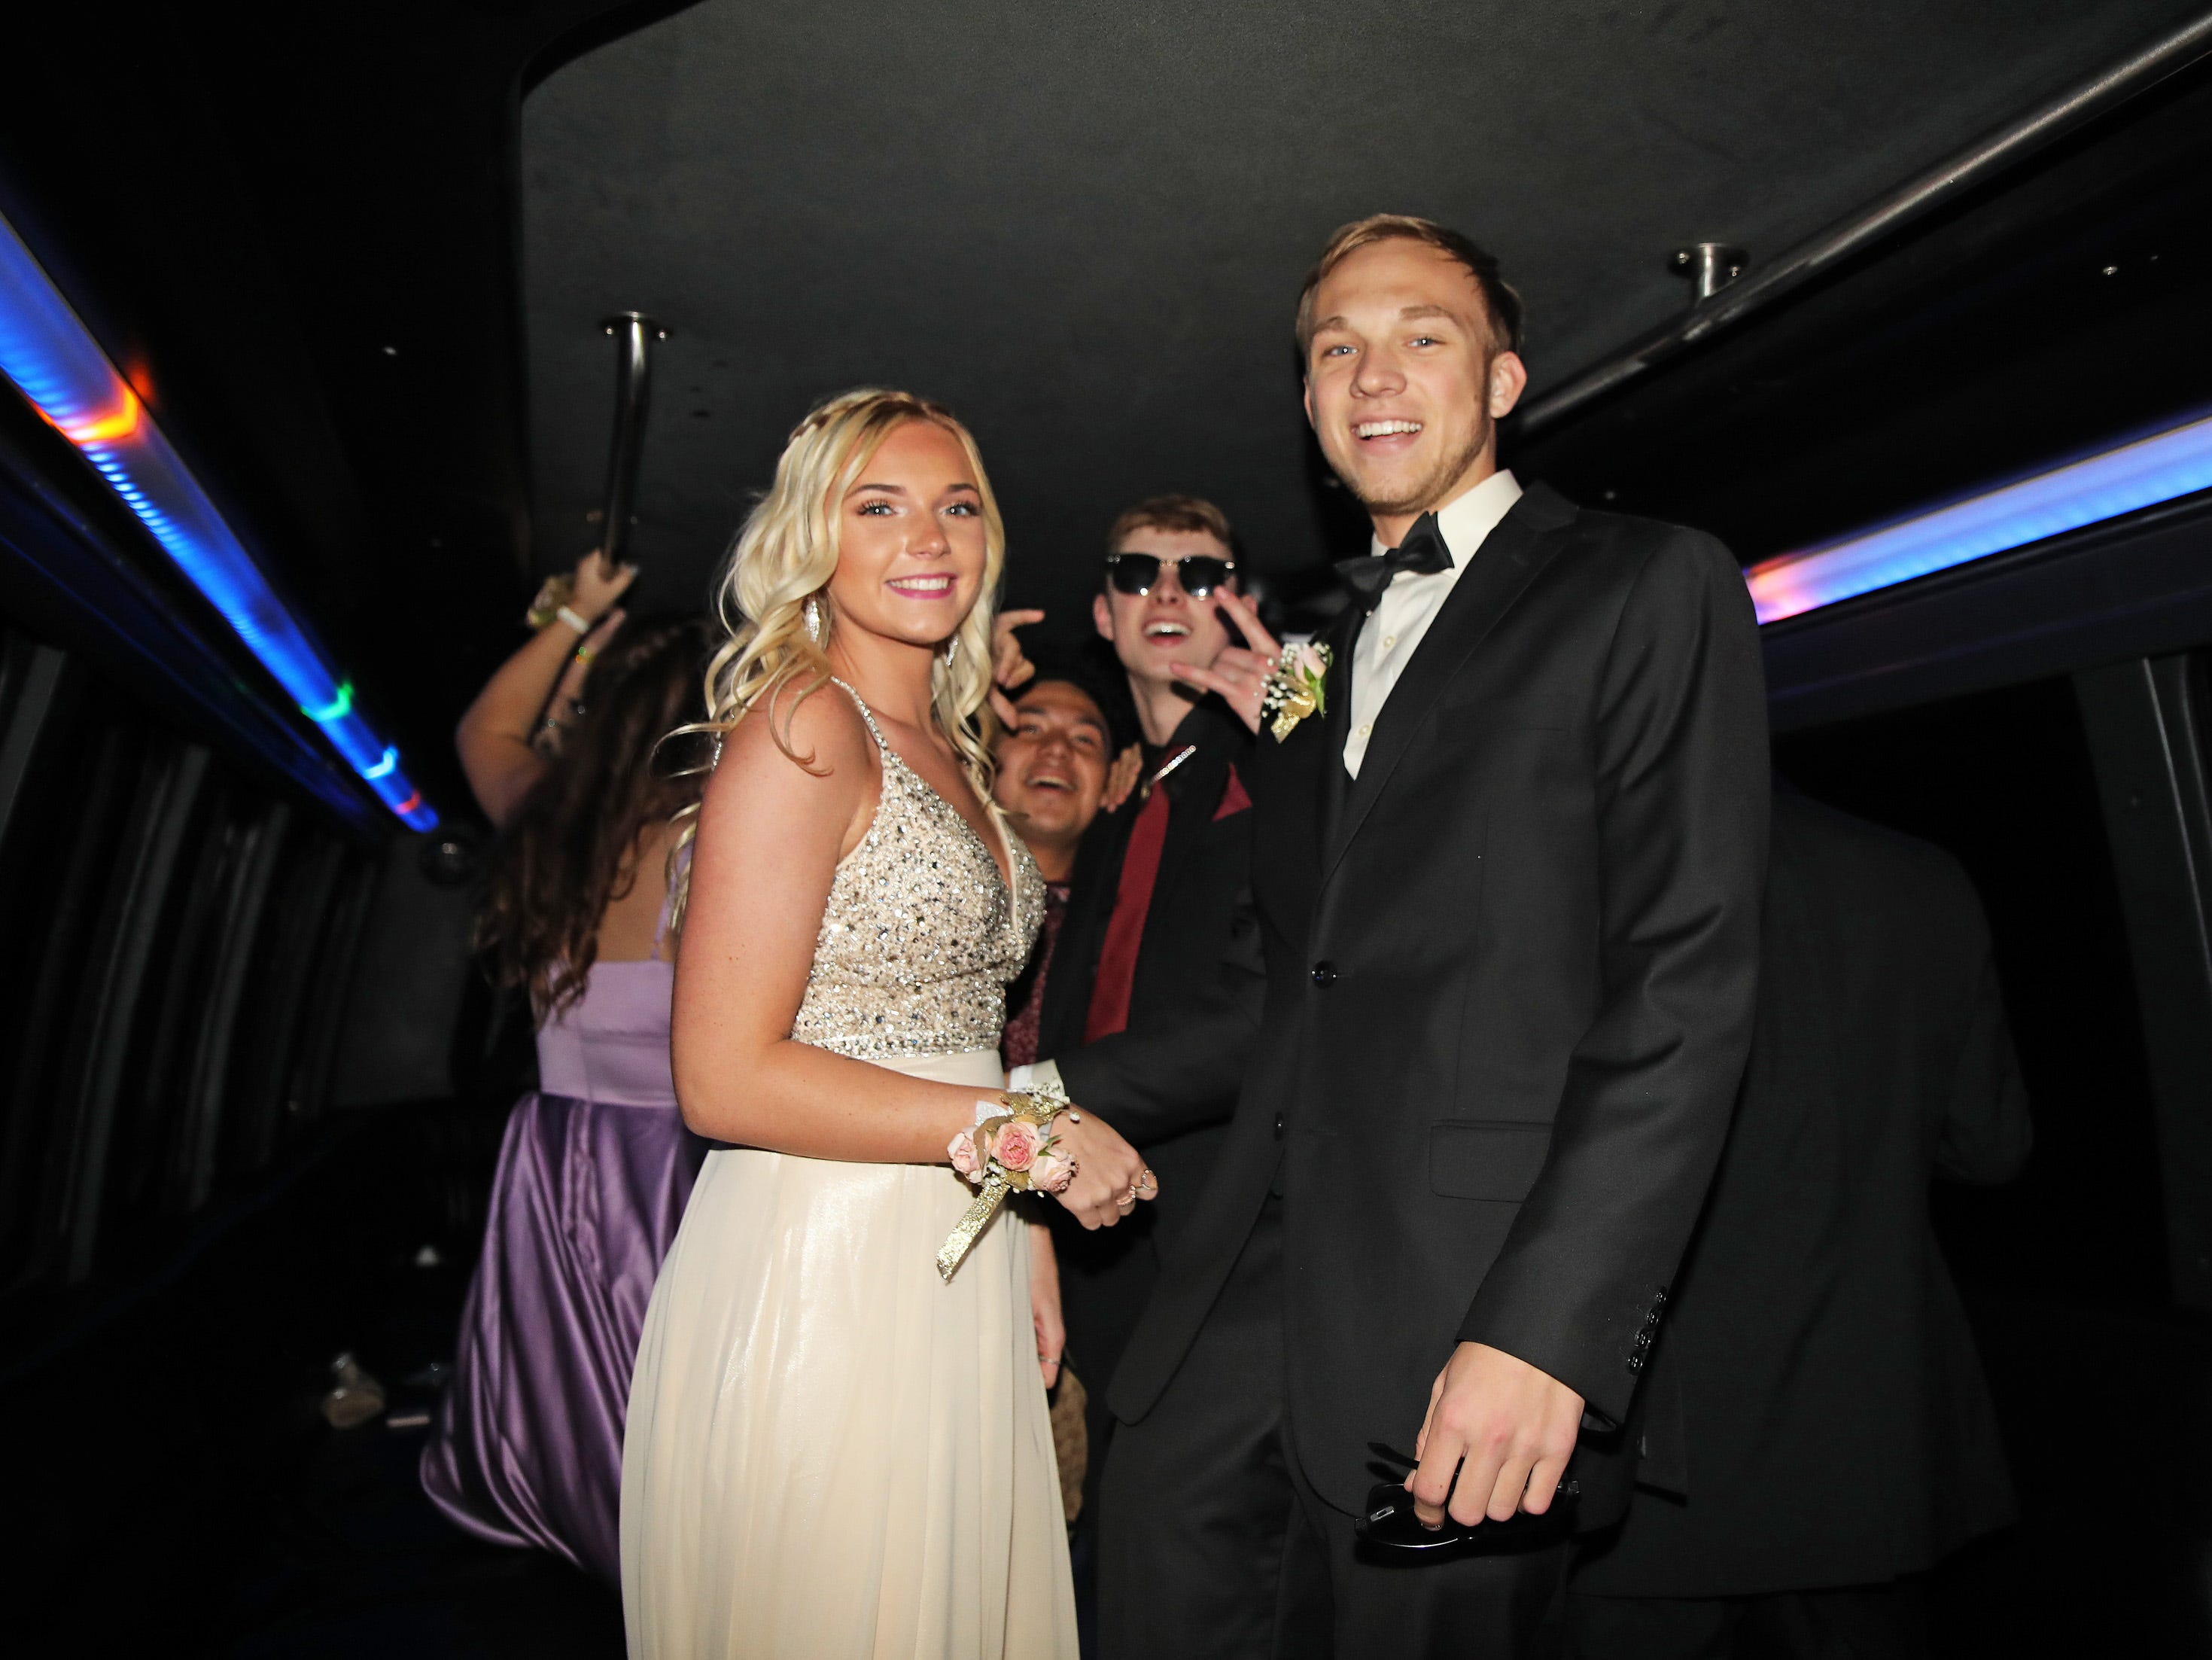 Seniors Rhiannon Staker and Avery Kneif arrive on the party bus for the Ankeny Centennial High School prom at the State Historical Building in Des Moines on Saturday, April 13, 2019.